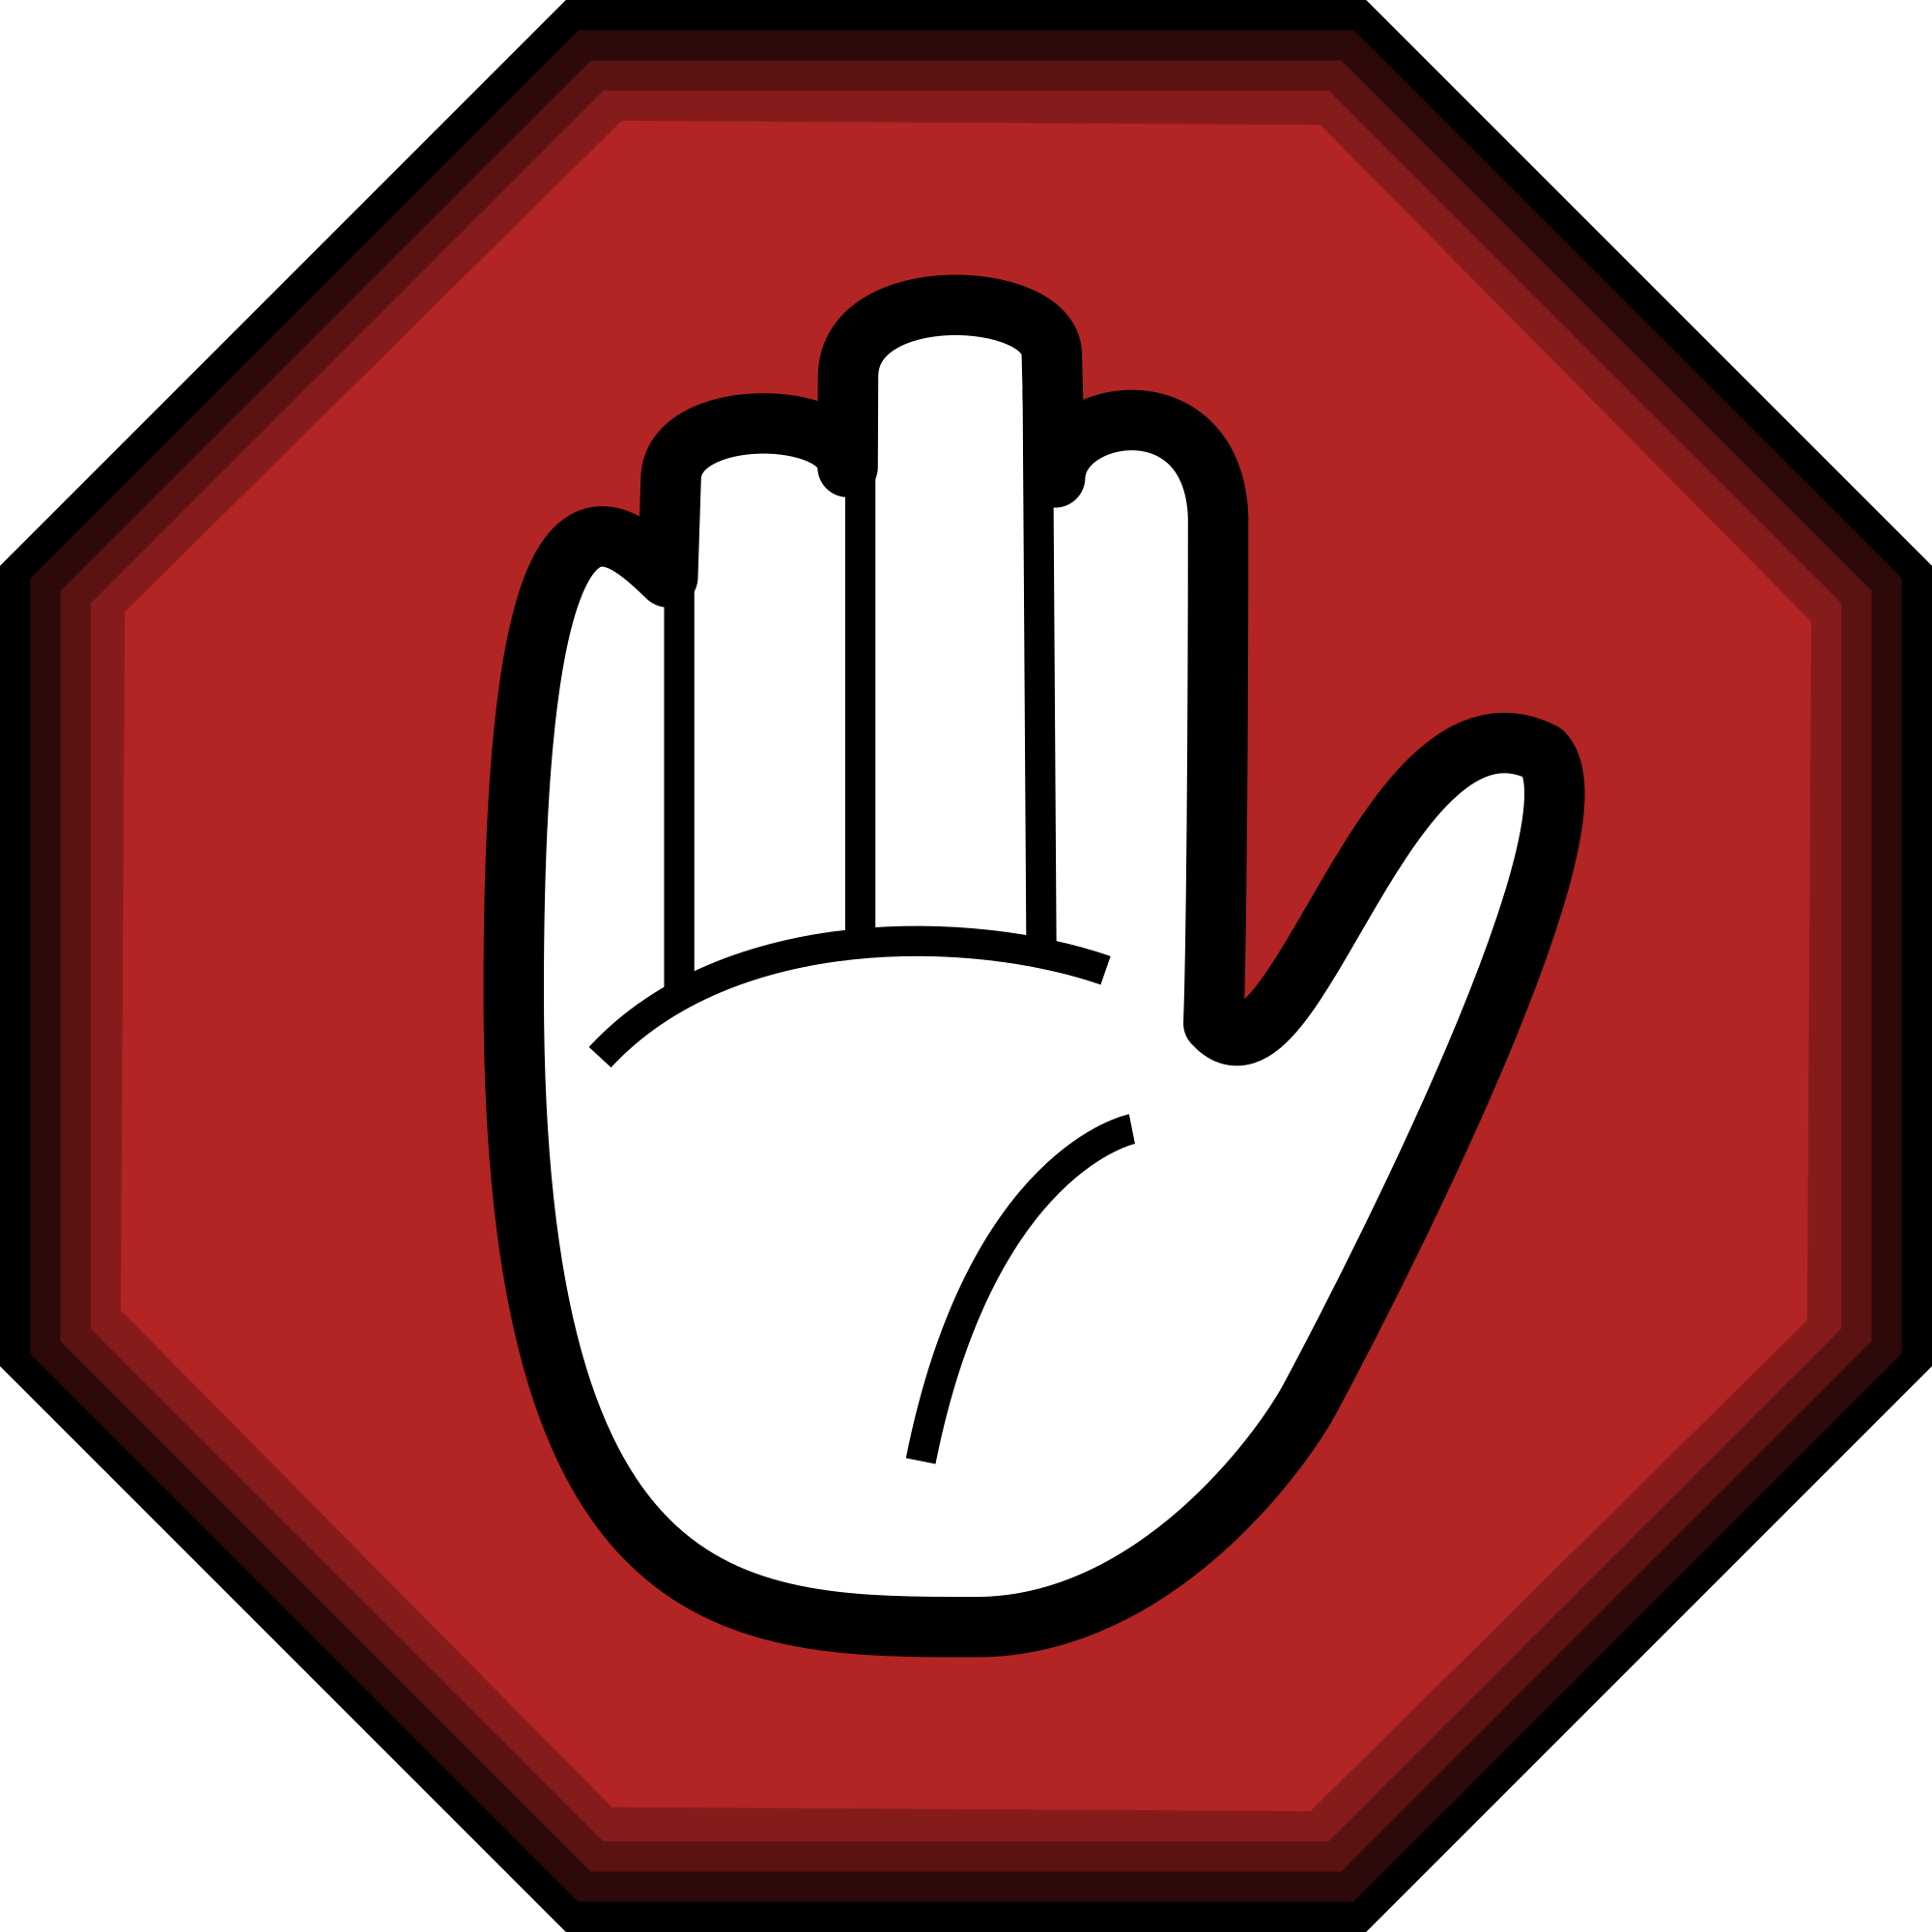 File:Stop hand.svg - Wikimedia Commons